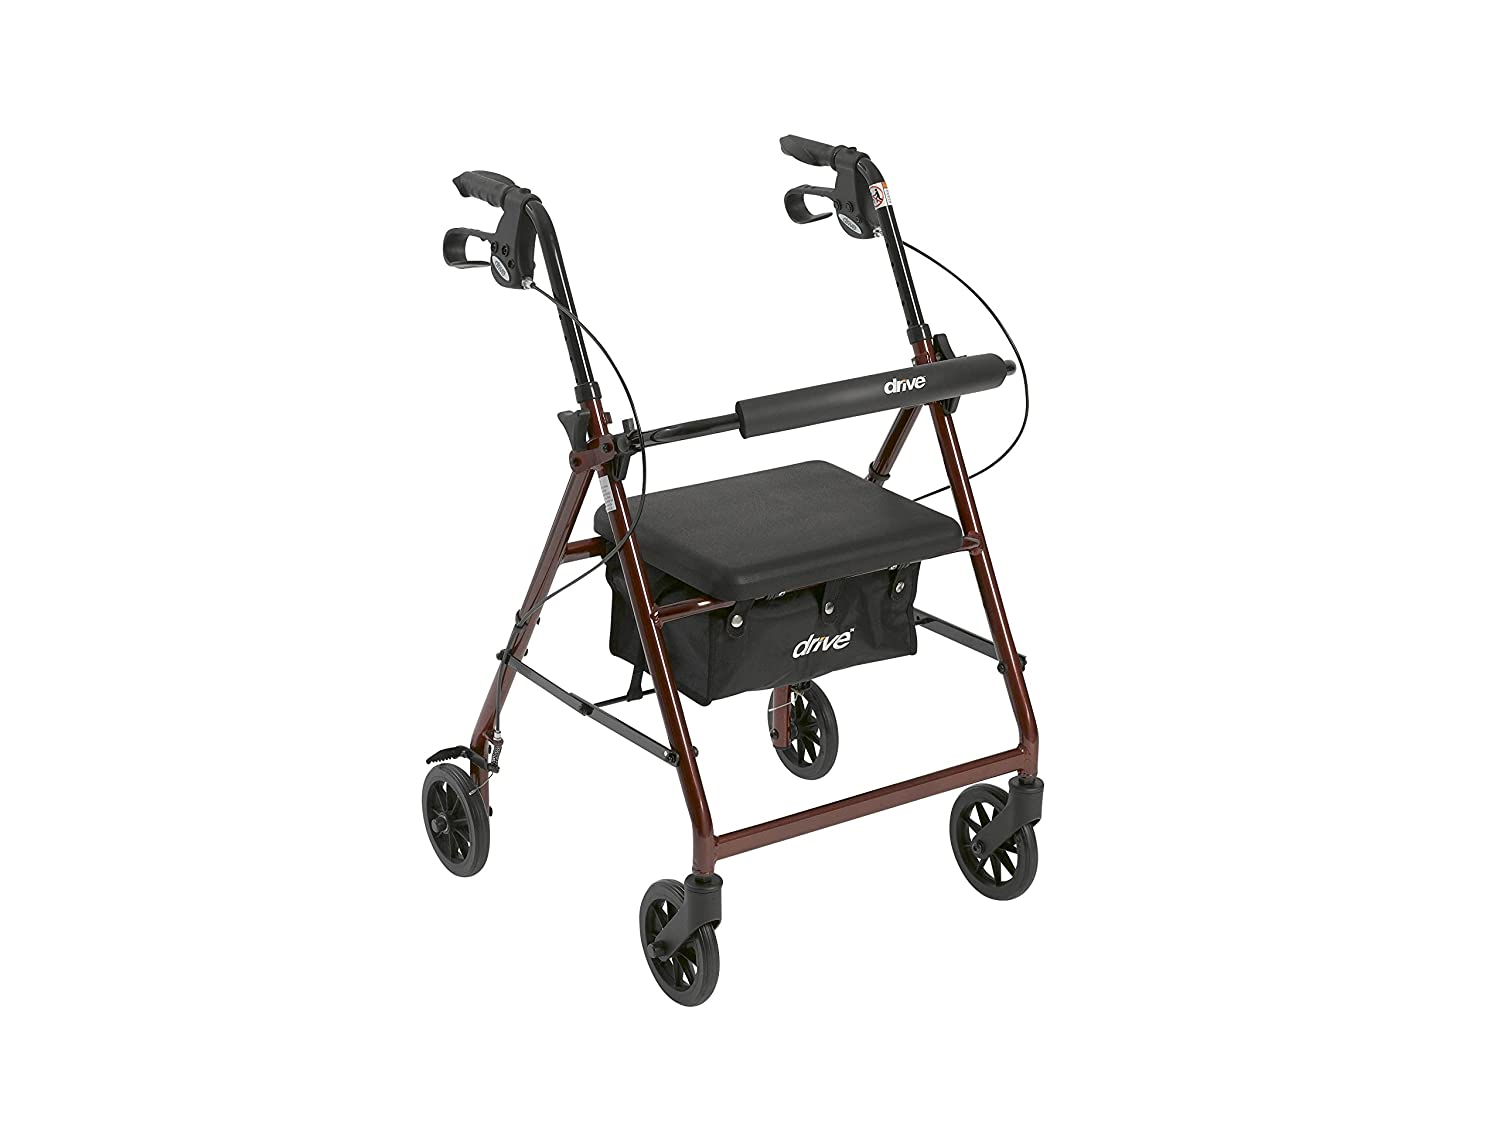 Drive Medical Aluminum Rollator Walker Fold Up and Removable Back Support, Padded Seat, 6' Wheels, Black Complete Medical 6 Wheels R726BK